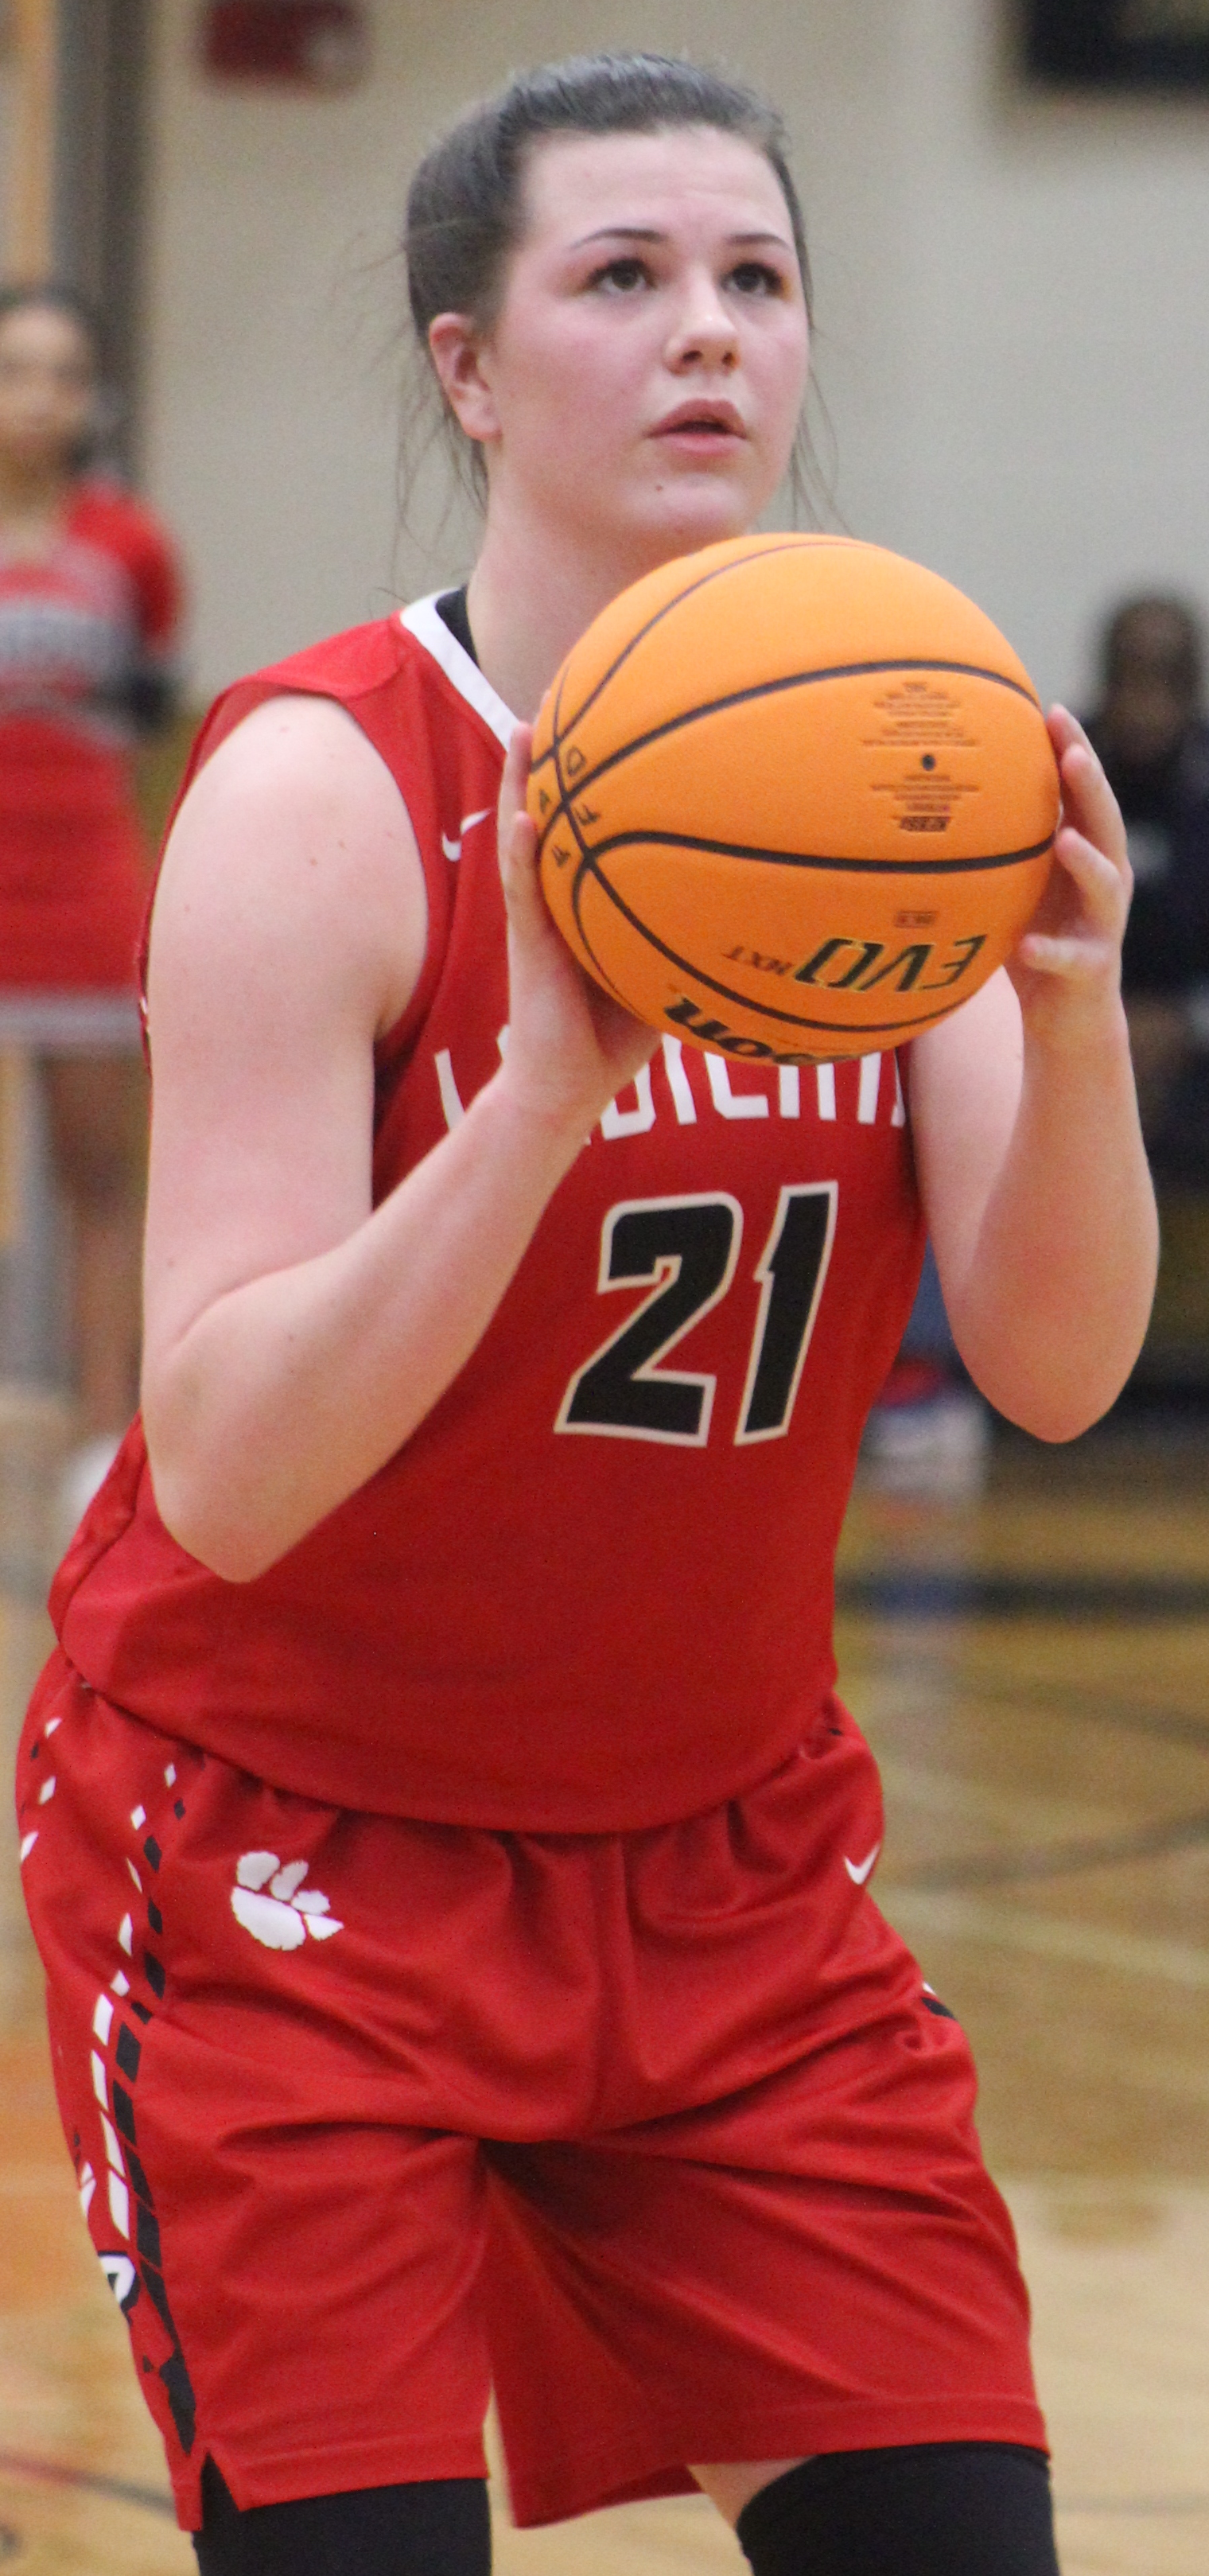 Andy Diffenderfer/The Clayton Tribune Destiny Deetz scored seven points and grabbed 10 rebounds in Rabun County's playoff game last Friday at Douglass.